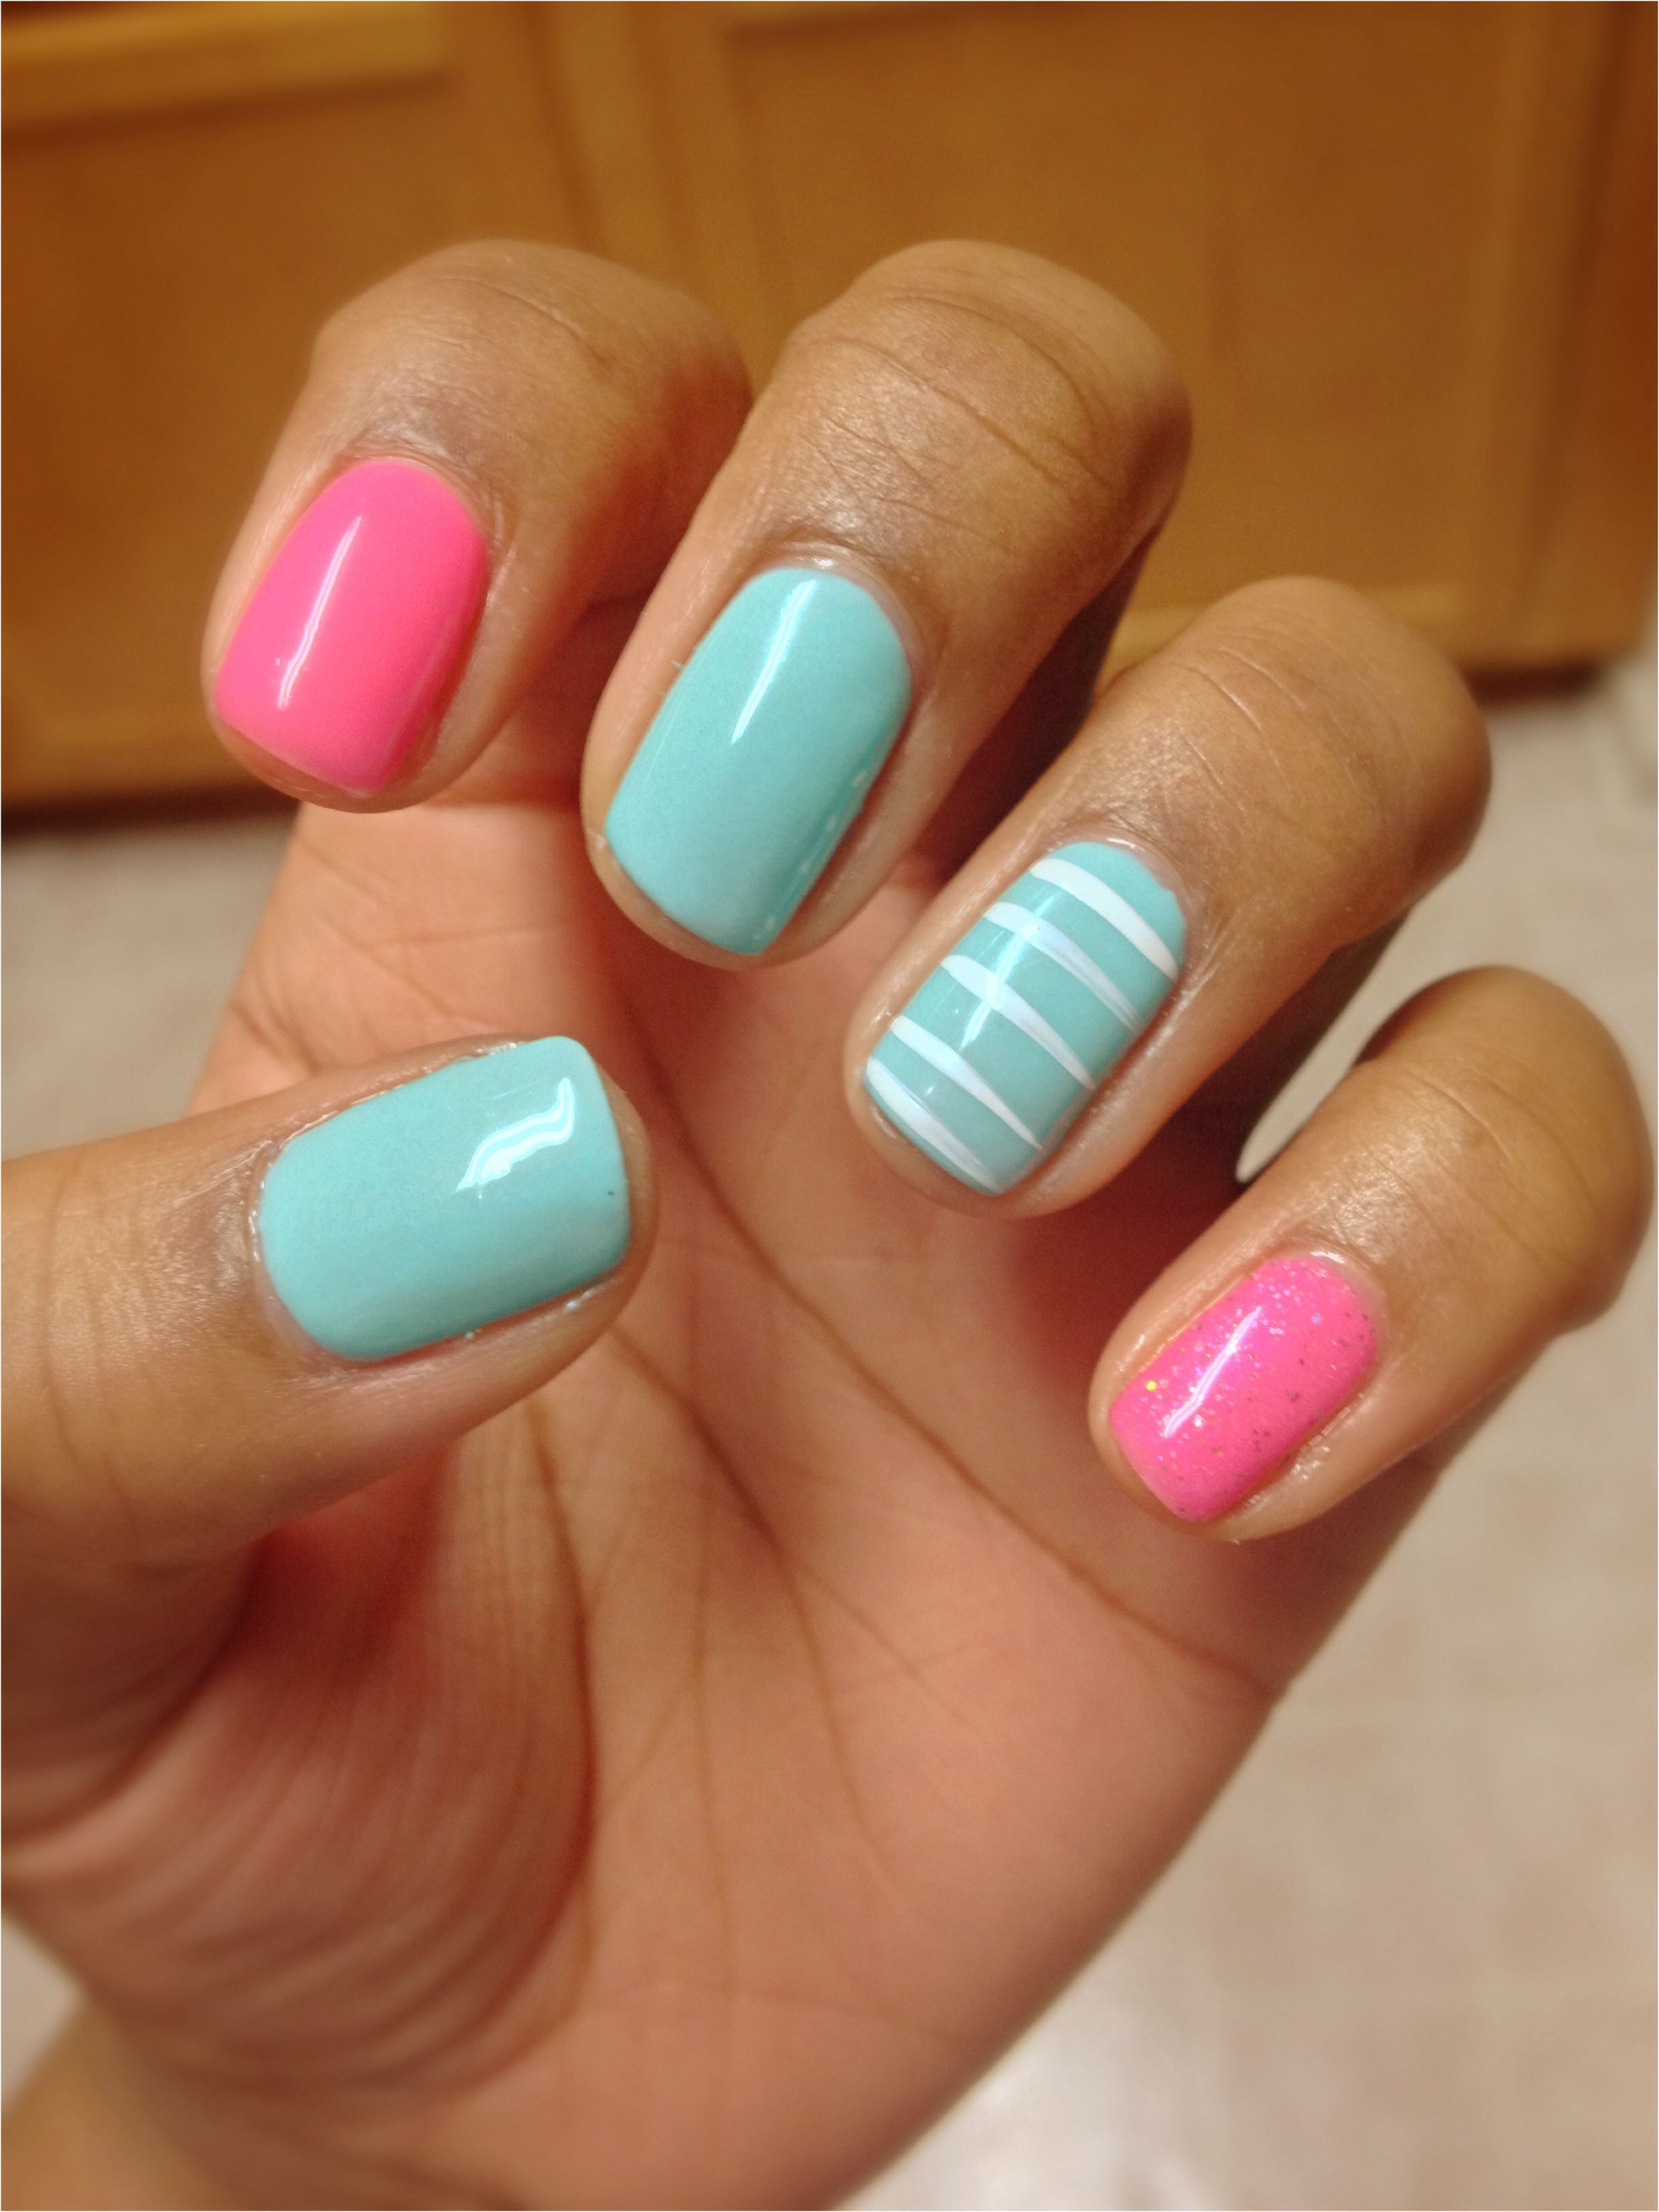 Spring Nails! Perfect Match gel polish colors.